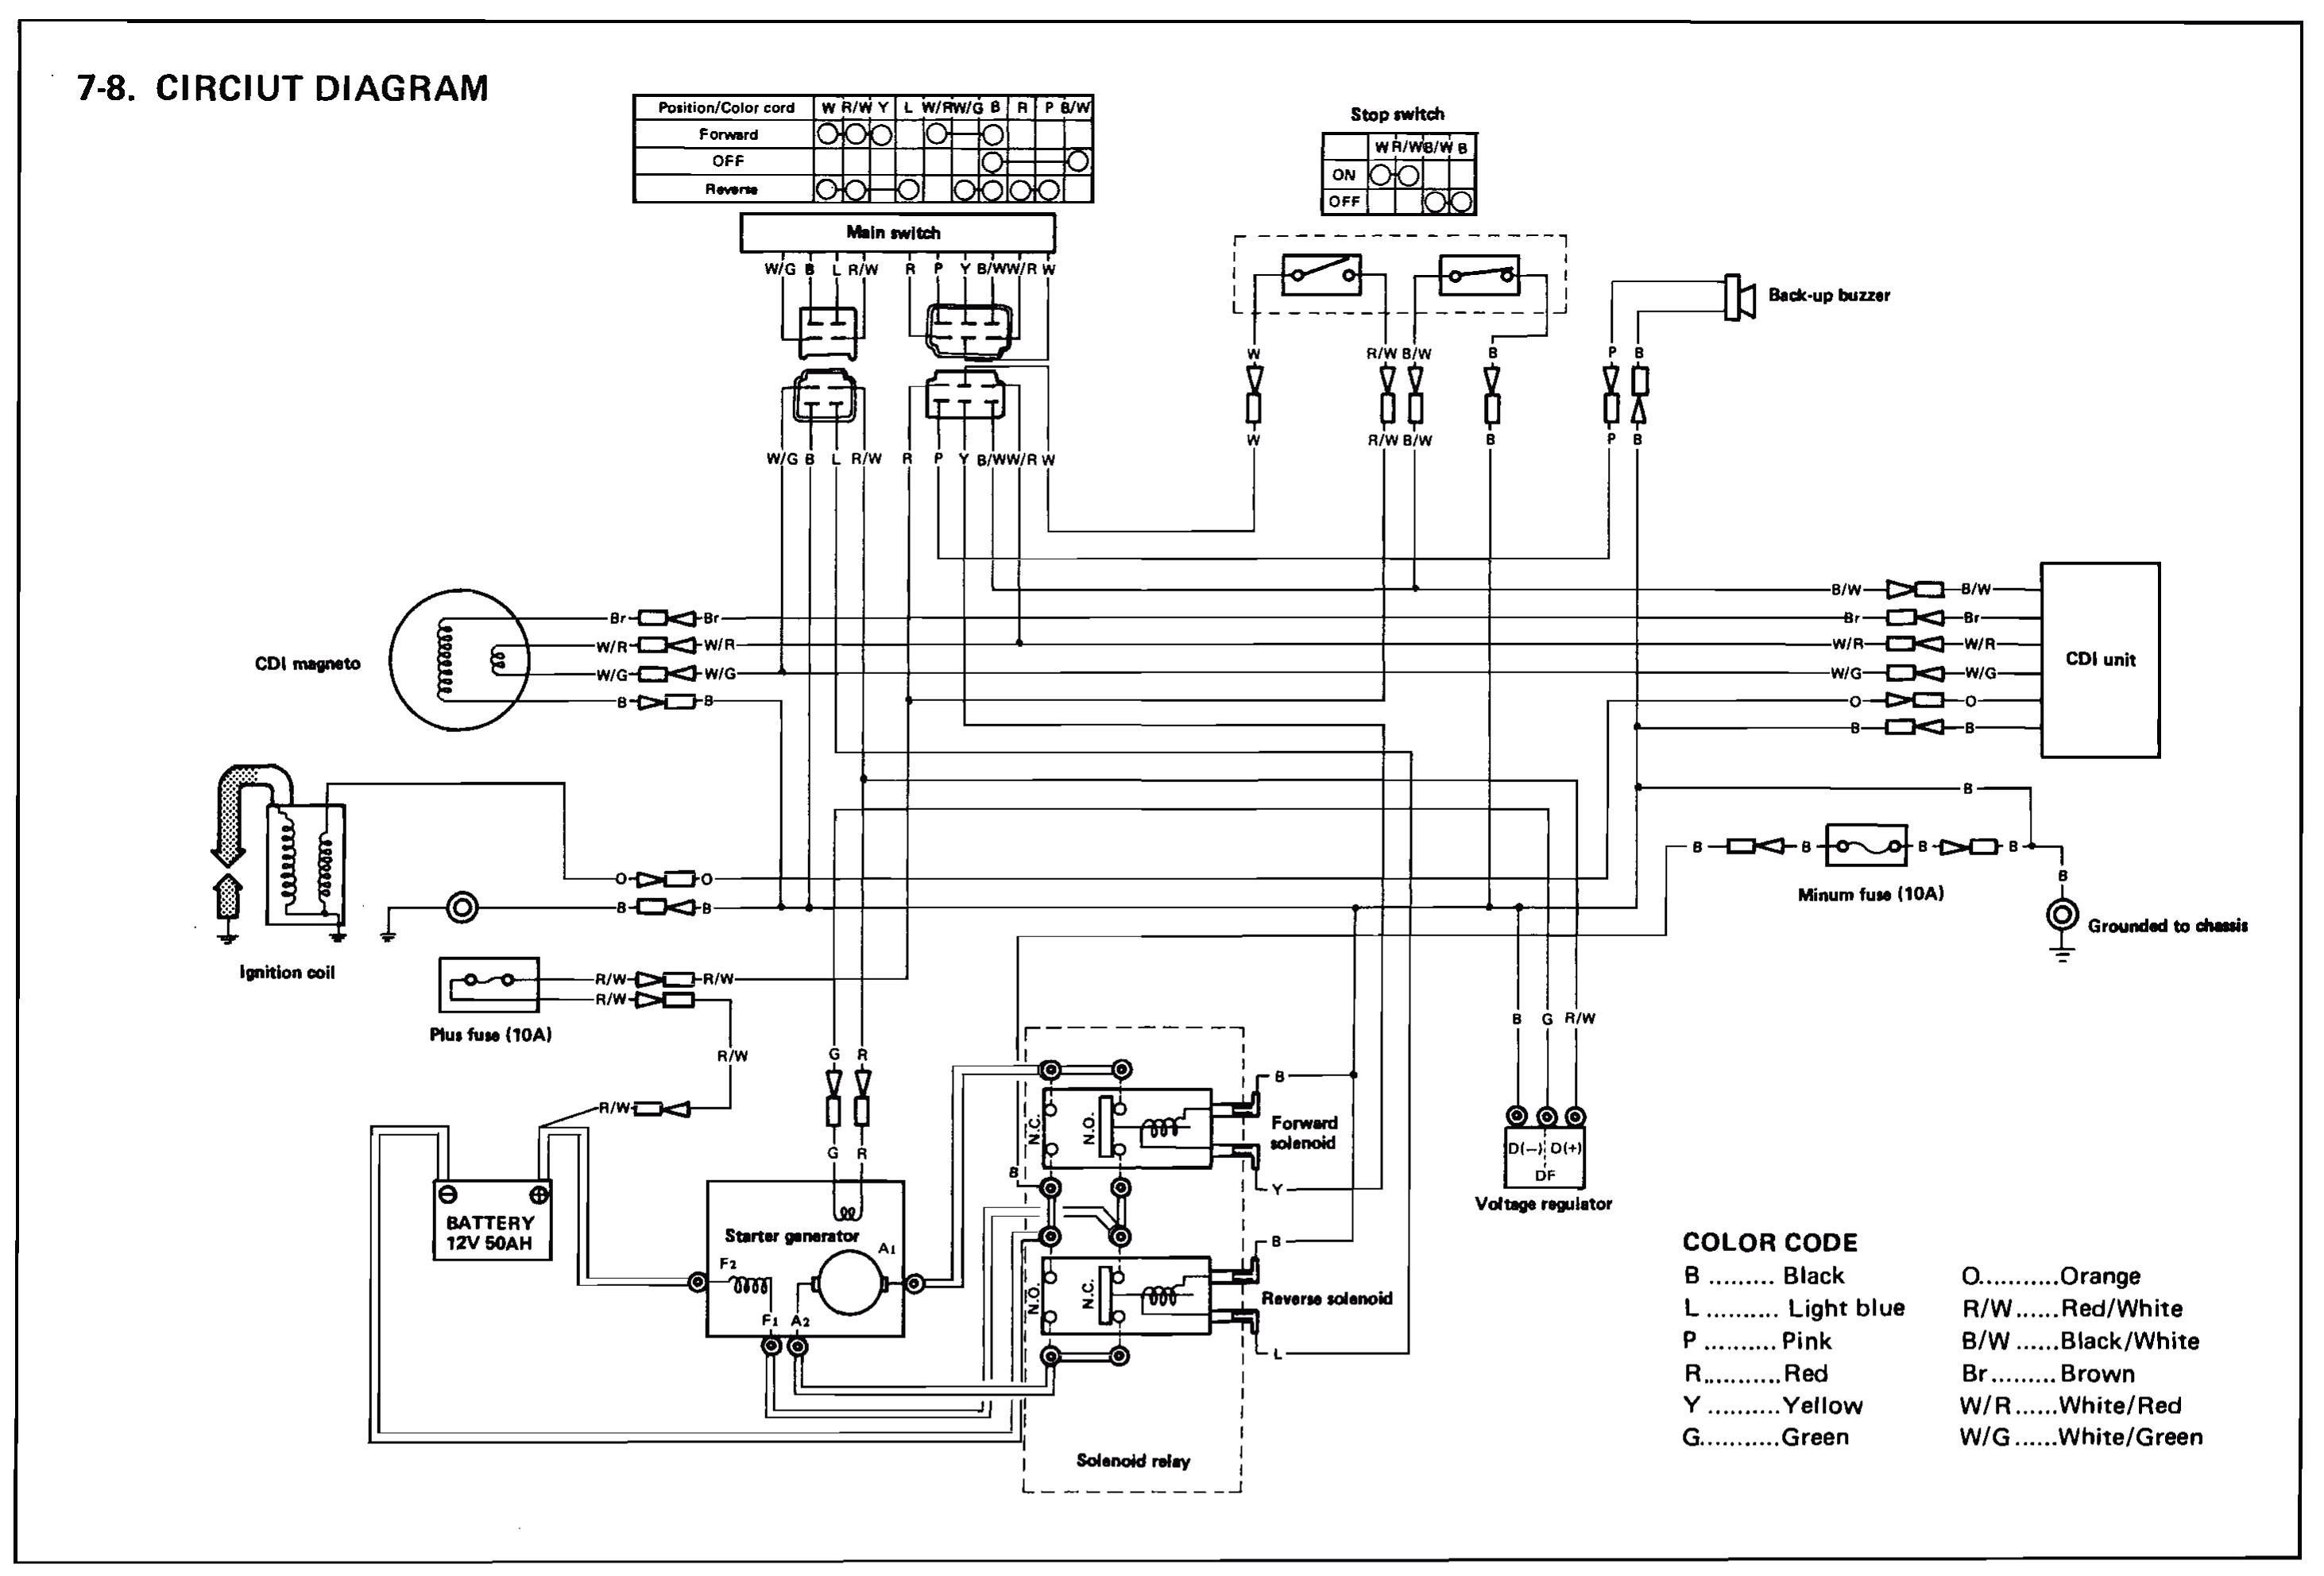 hes 9600 12 24d 630 wiring diagram Collection-Wiring Diagram Detail Name hes 9600 12 24d 630 wiring diagram 12-p